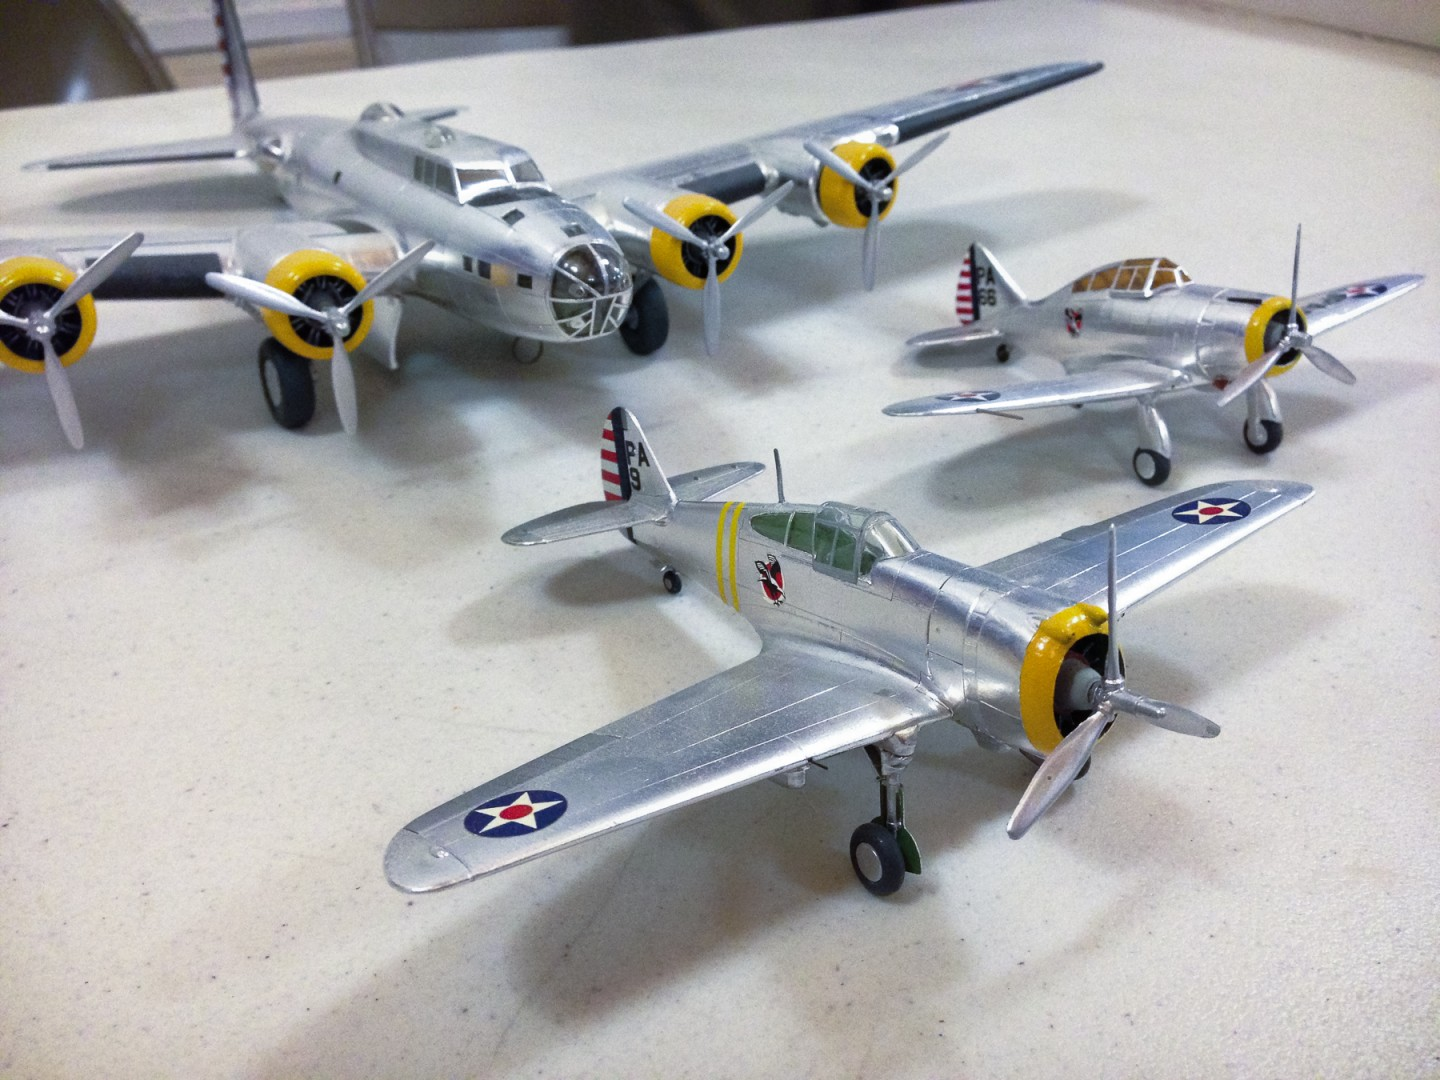 Jim Hassler brought this trio of bare metal beauties to the January 2013 meeting. All were covered with Baremetal Foil.